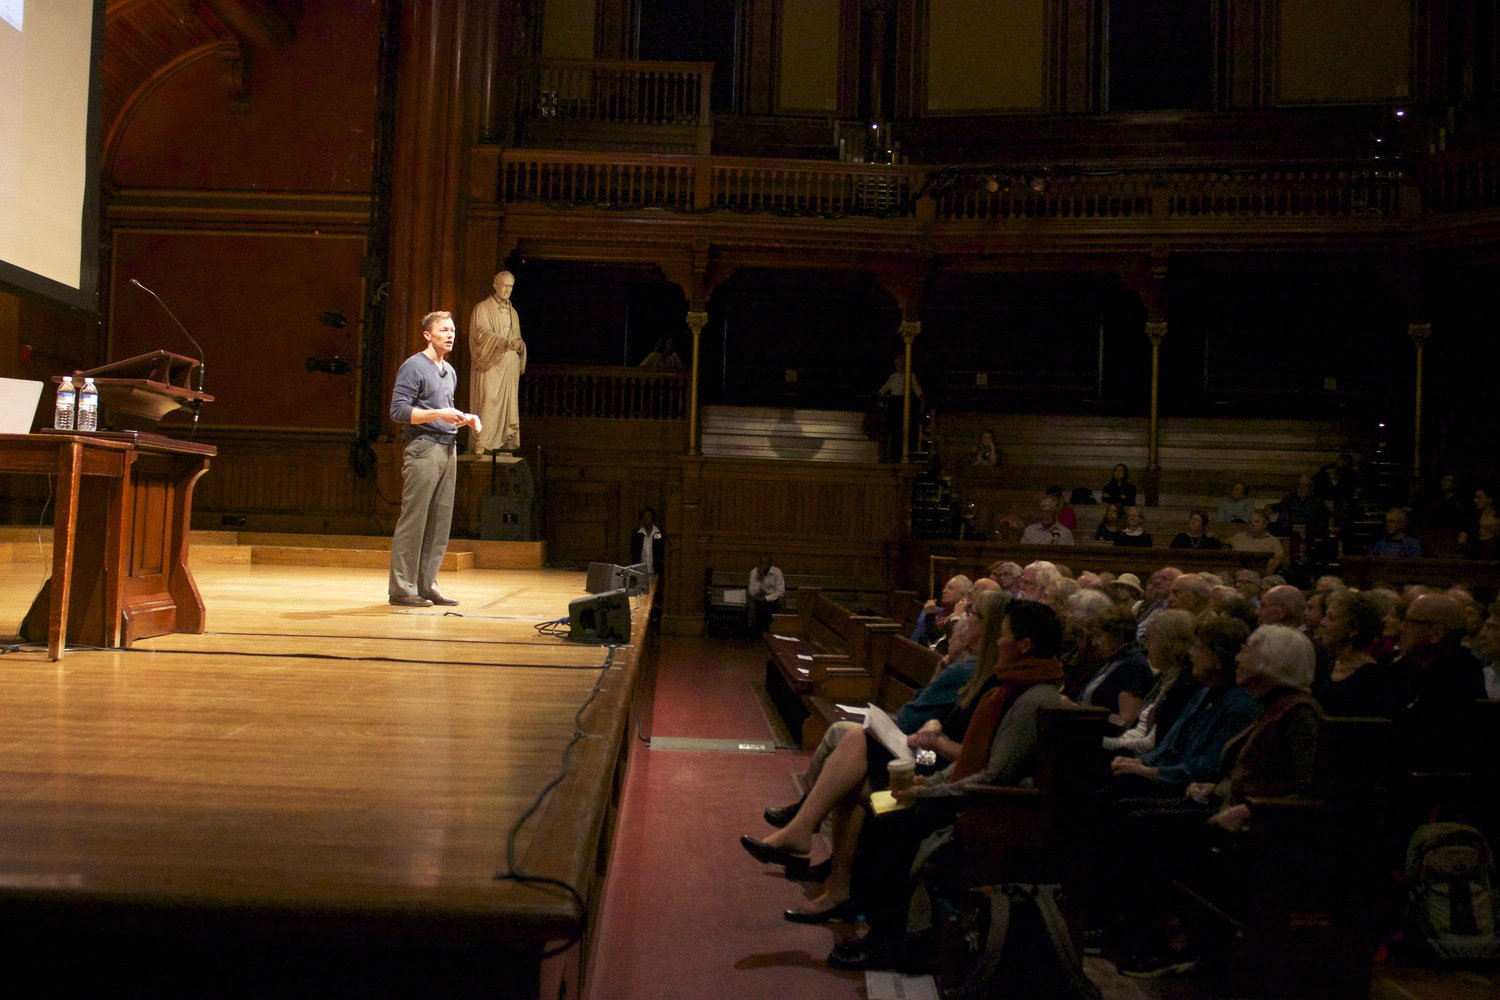 Matthew Desmond, author of Evicted and a sociology professor at Harvard, speaks about his work at the Harvard Institute for Learning in Retirement convocation. HILR is a community of retirees who attend and teach classes, and is a part of Harvard's Division of Continuing Education.